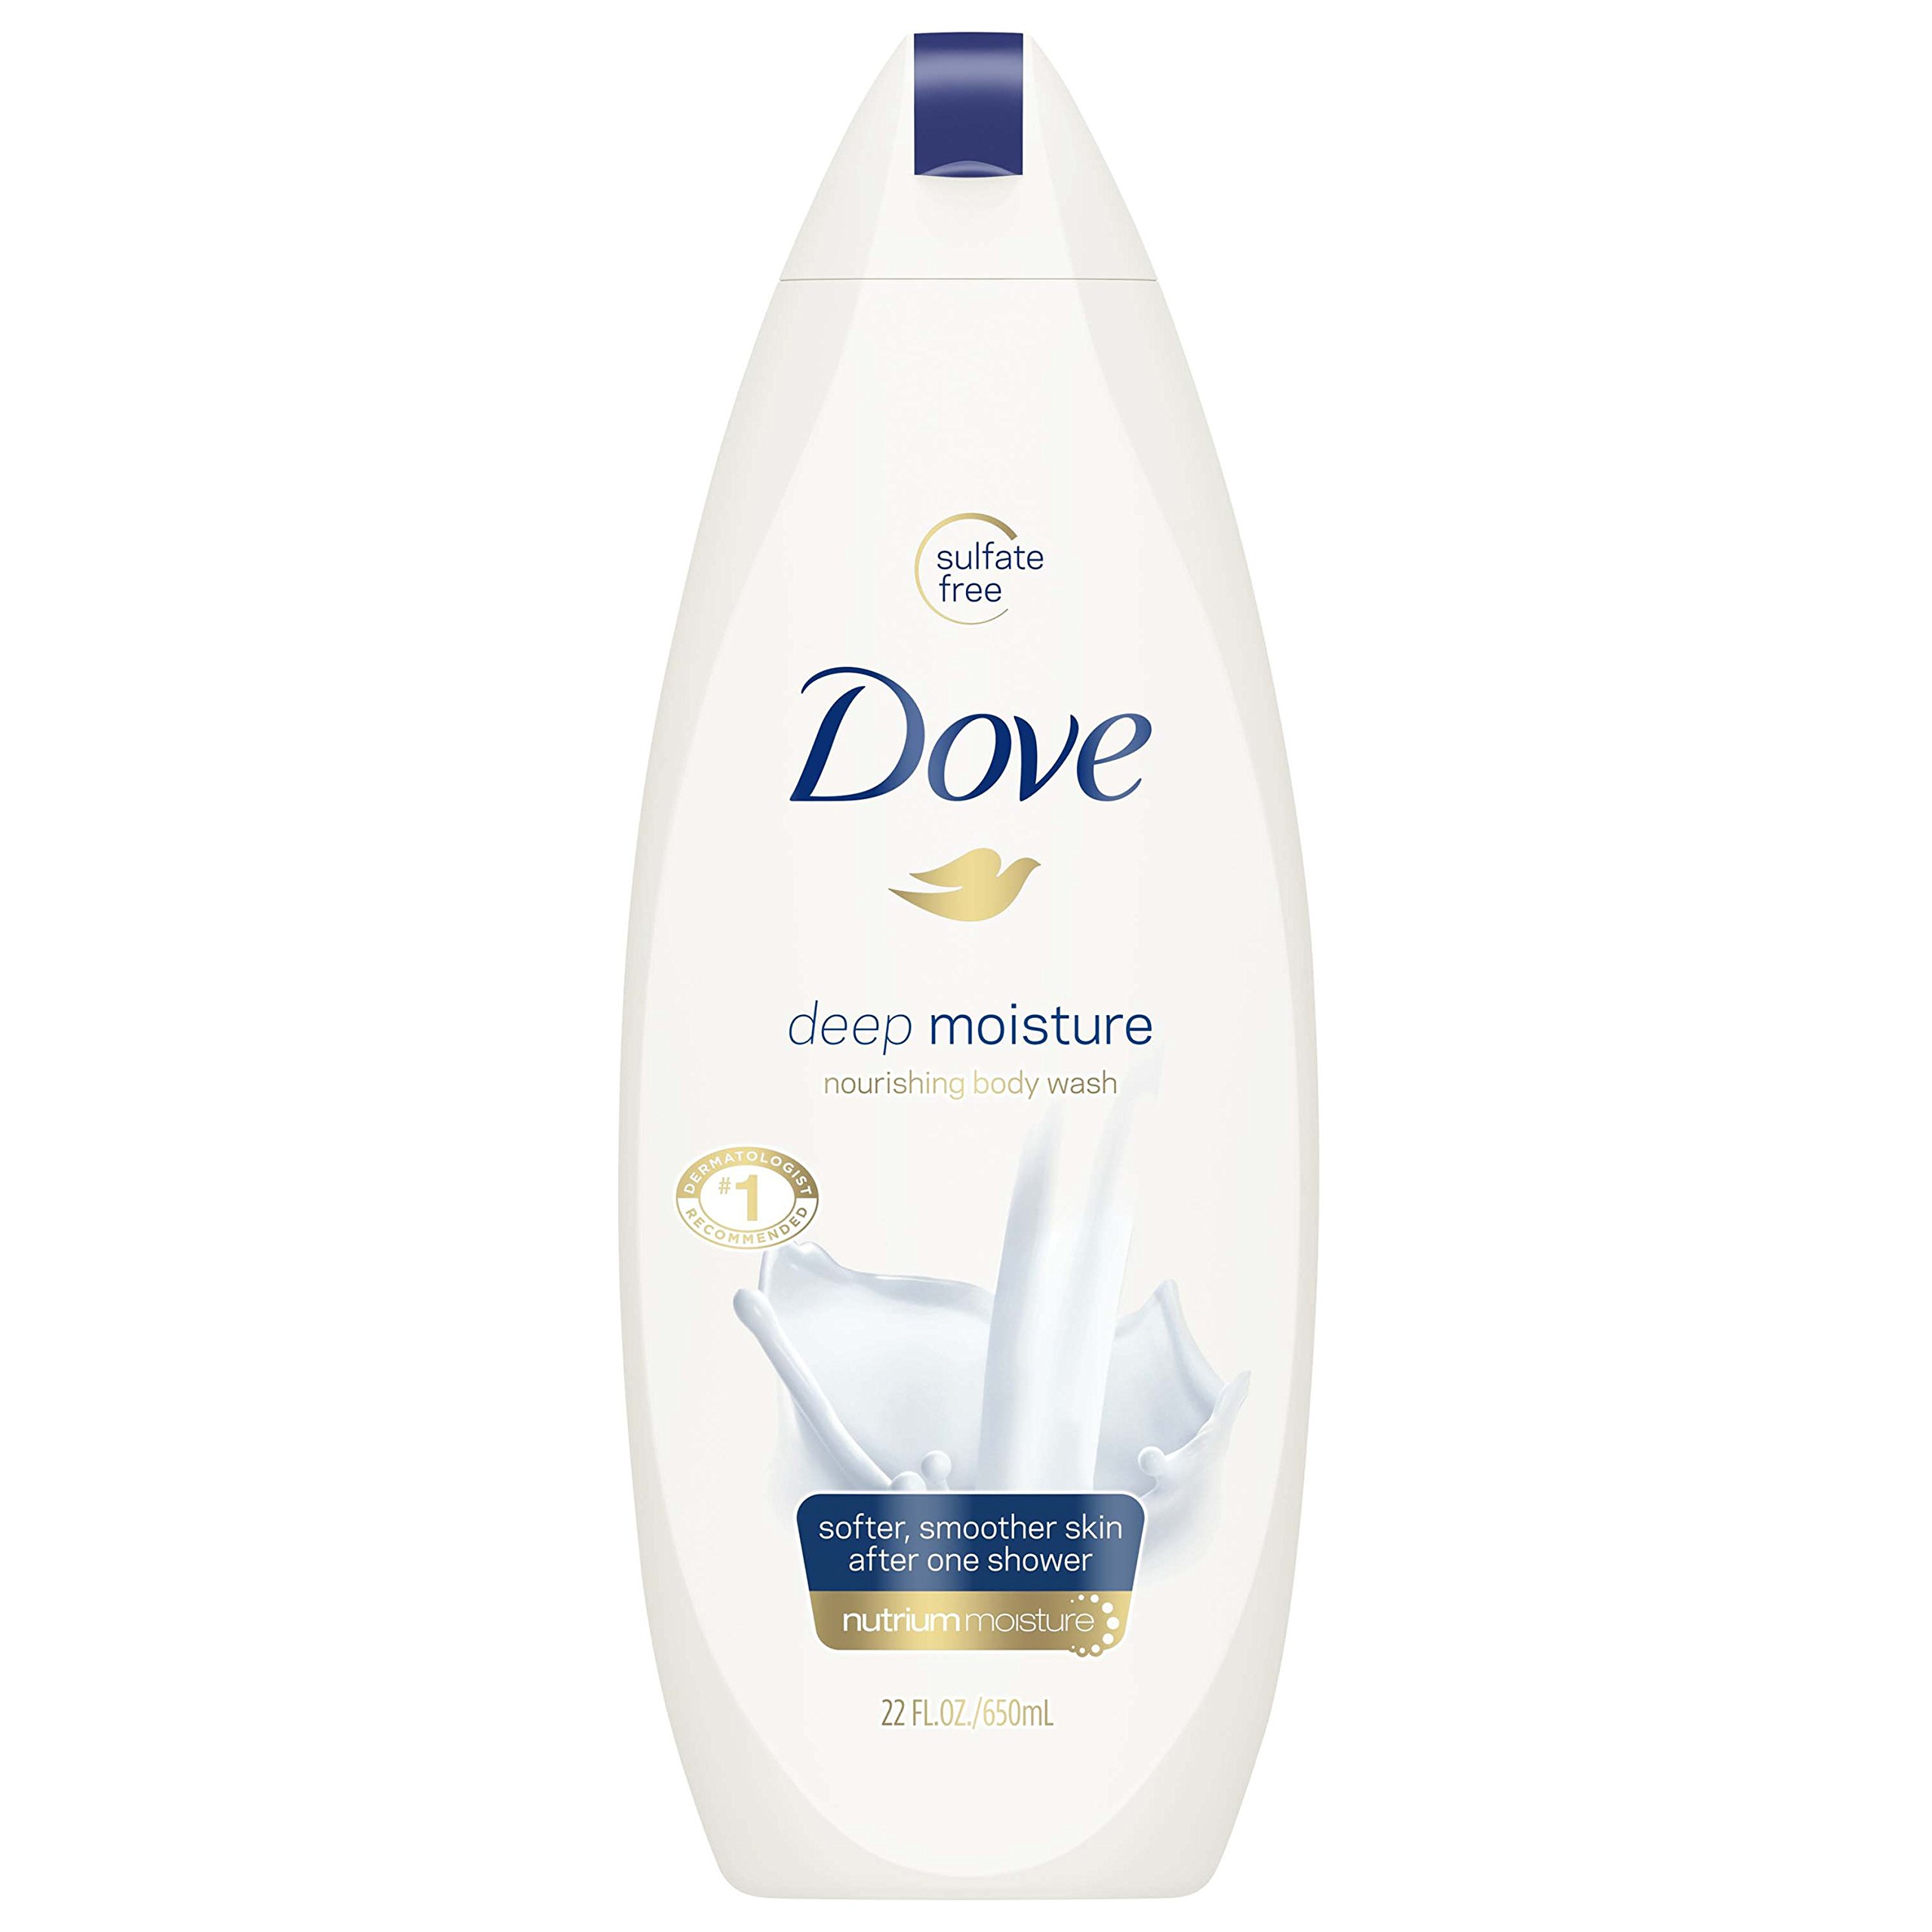 Dove Body Wash, Deep Moisture, 22 oz (Pack of 4)